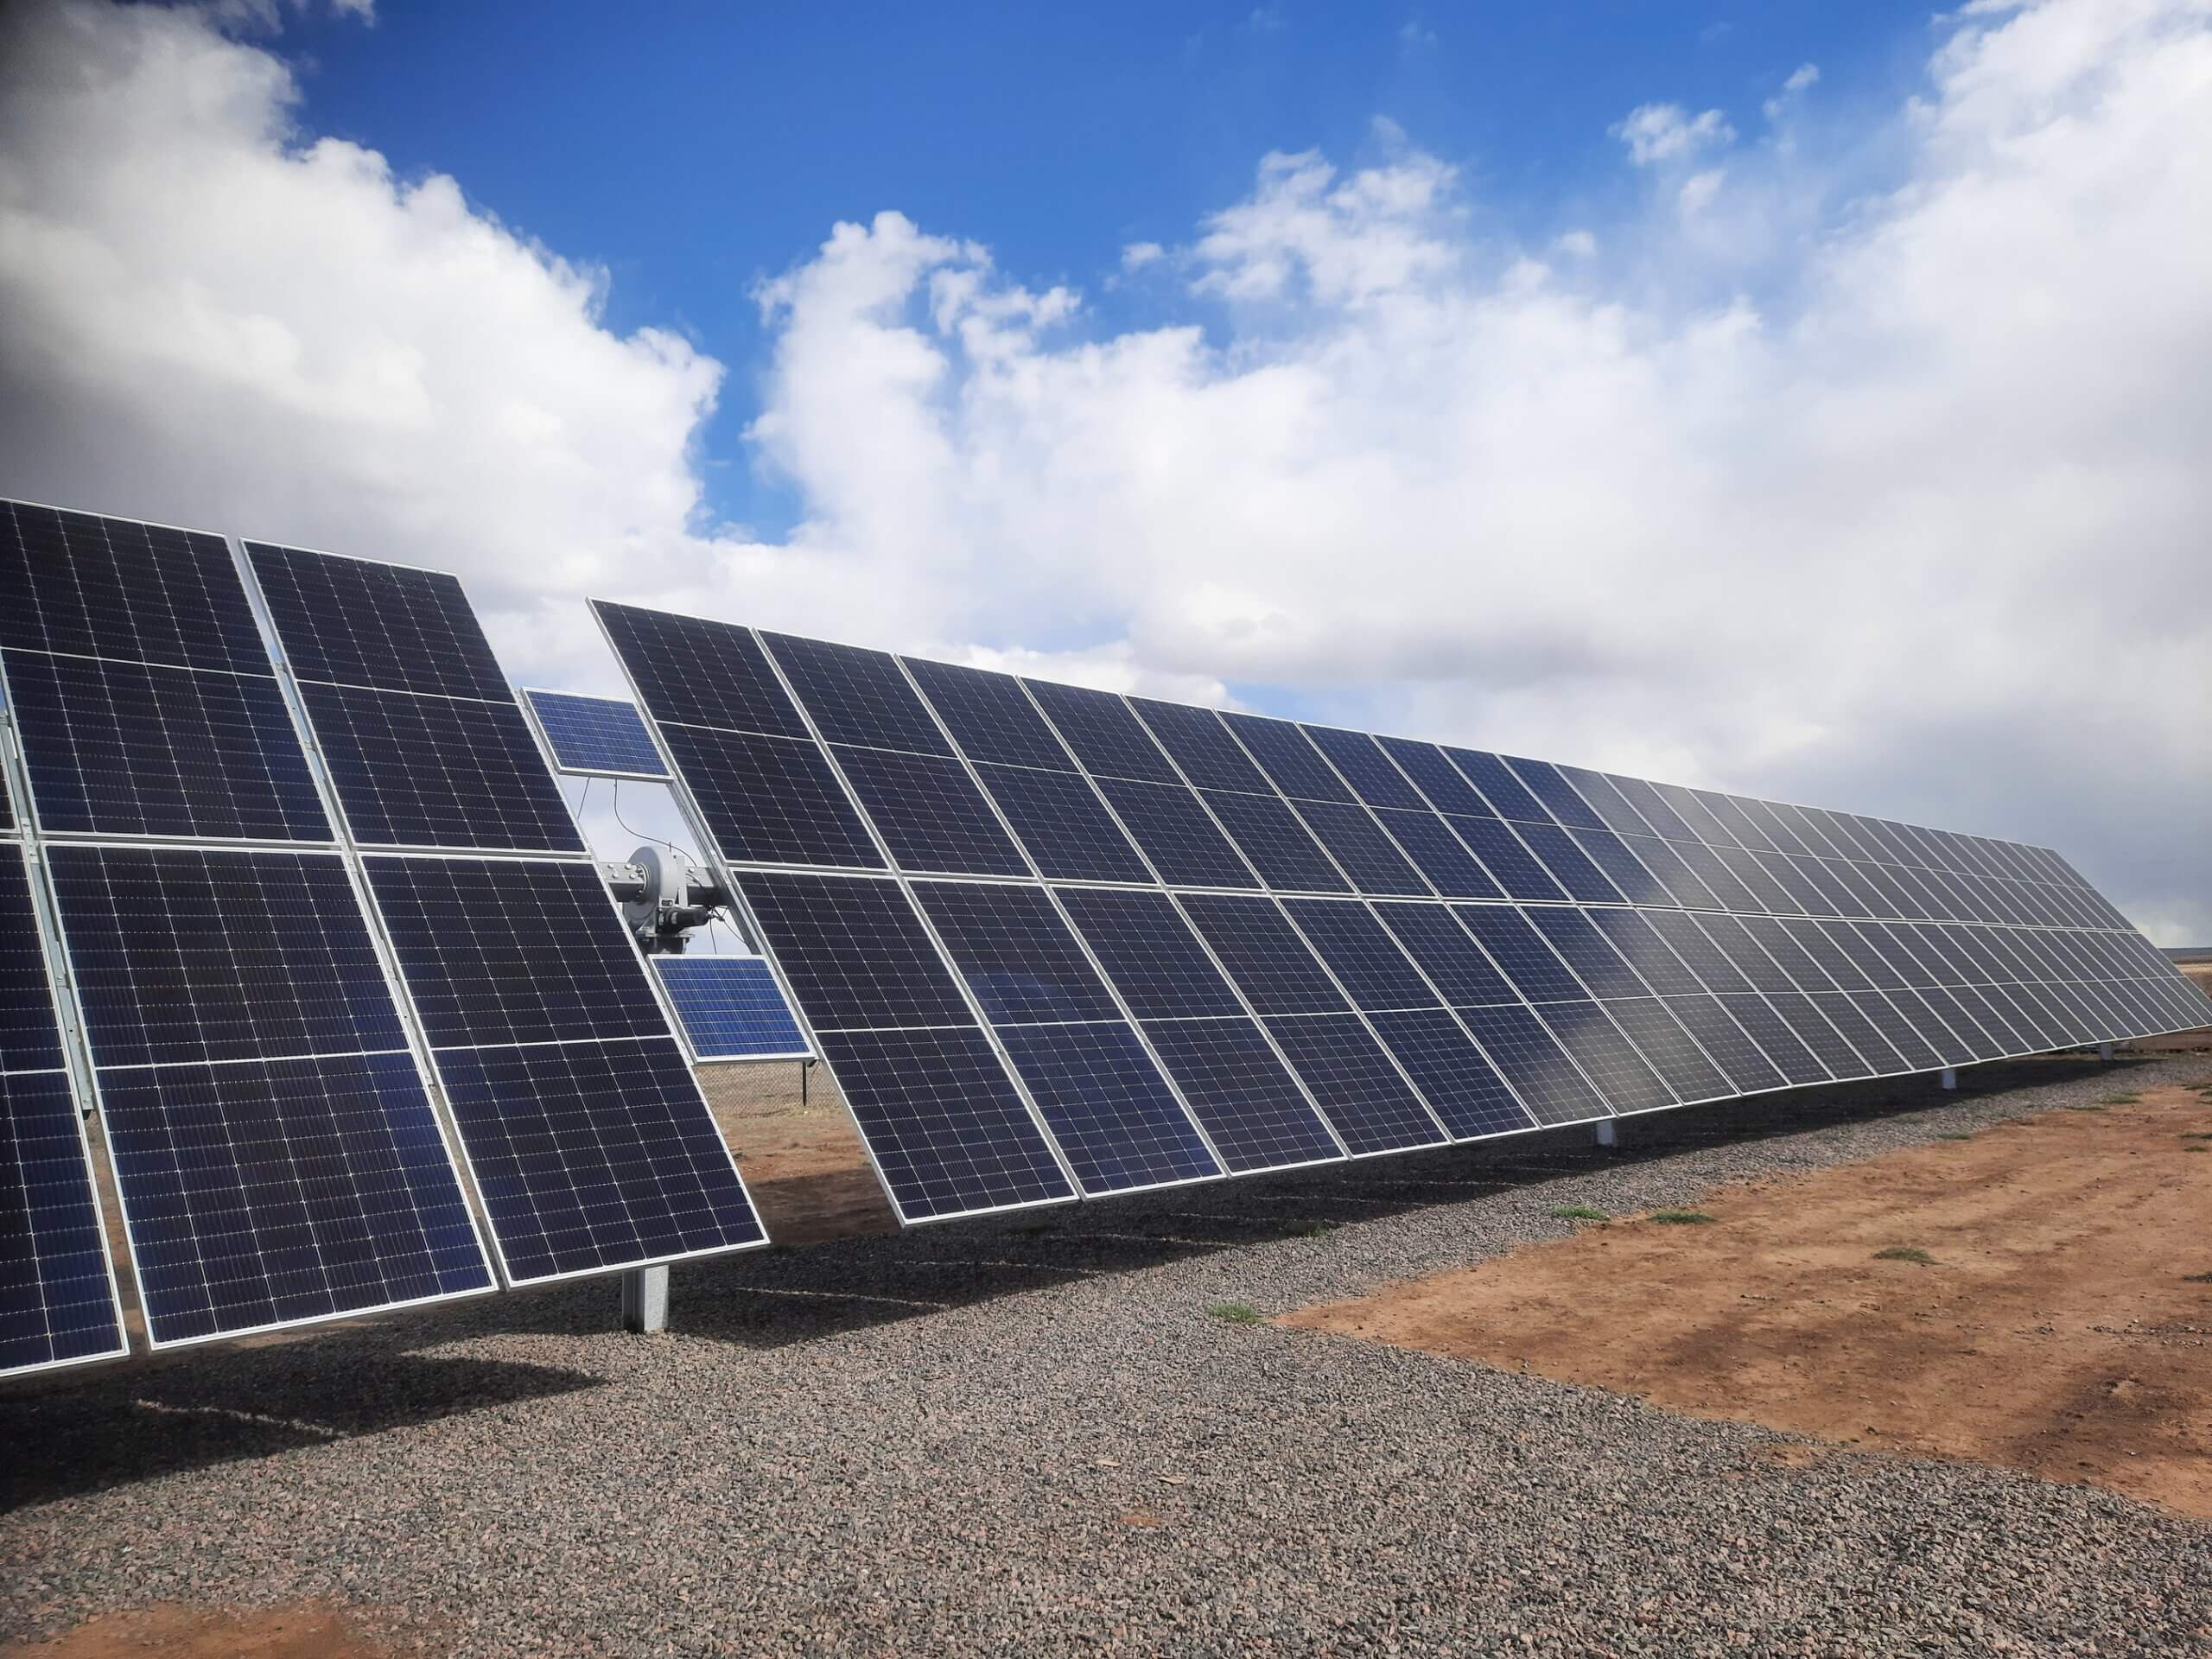 FTC Solar introduces the new Voyager + Solar Tracker for large format modules